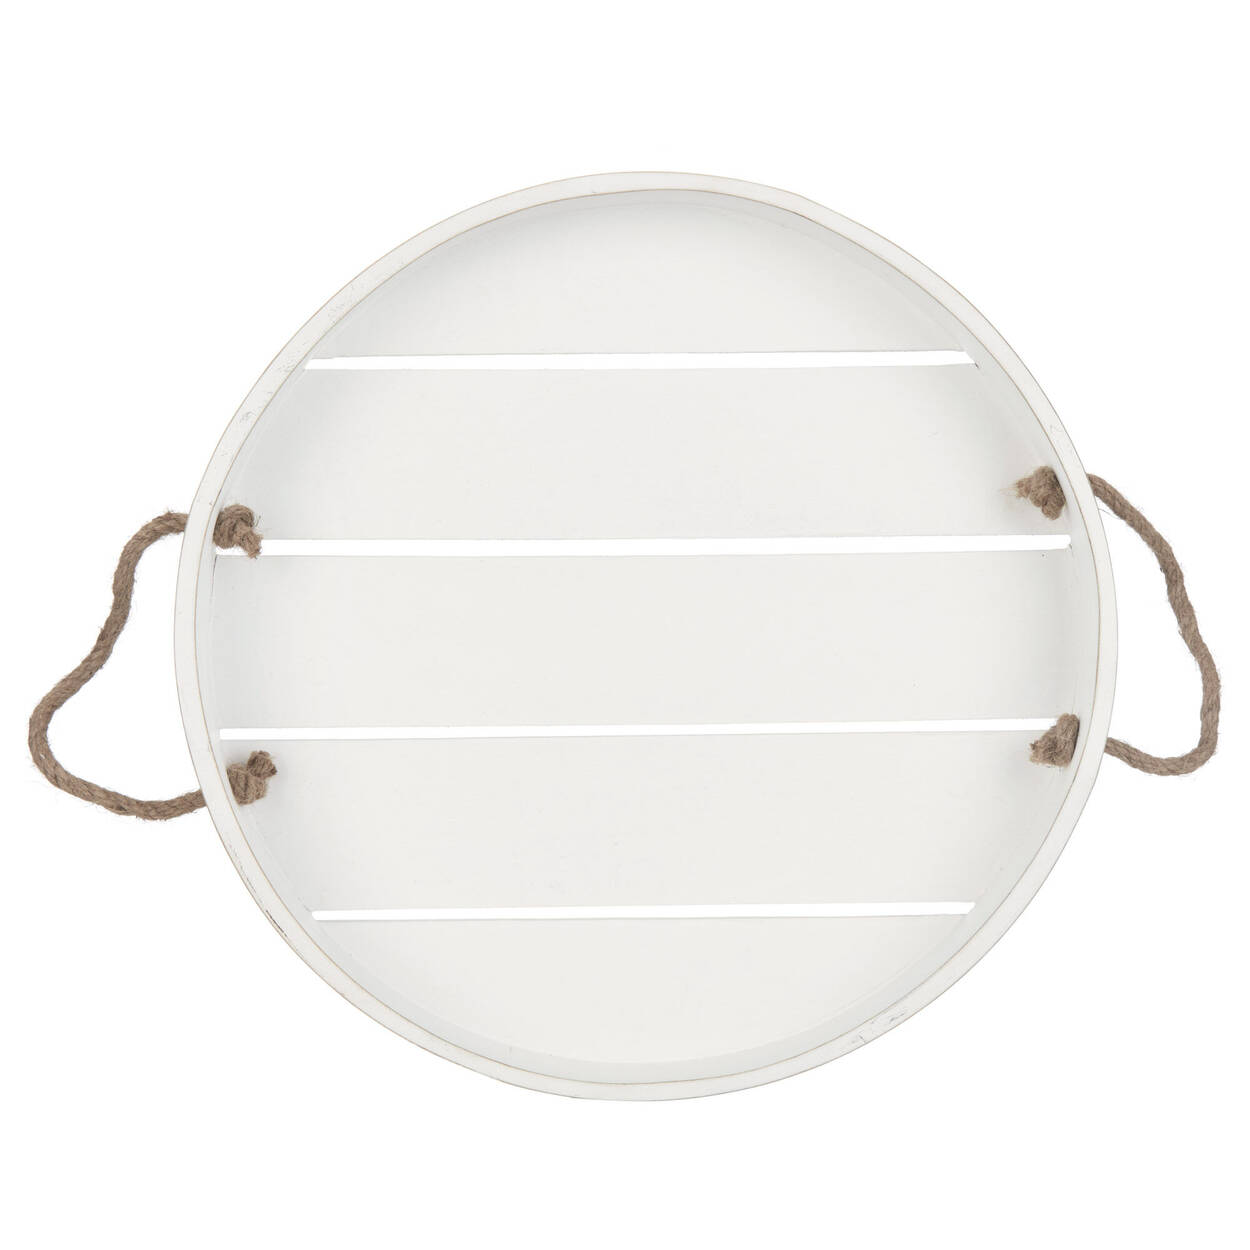 Round Wooden Tray with Rope Handles